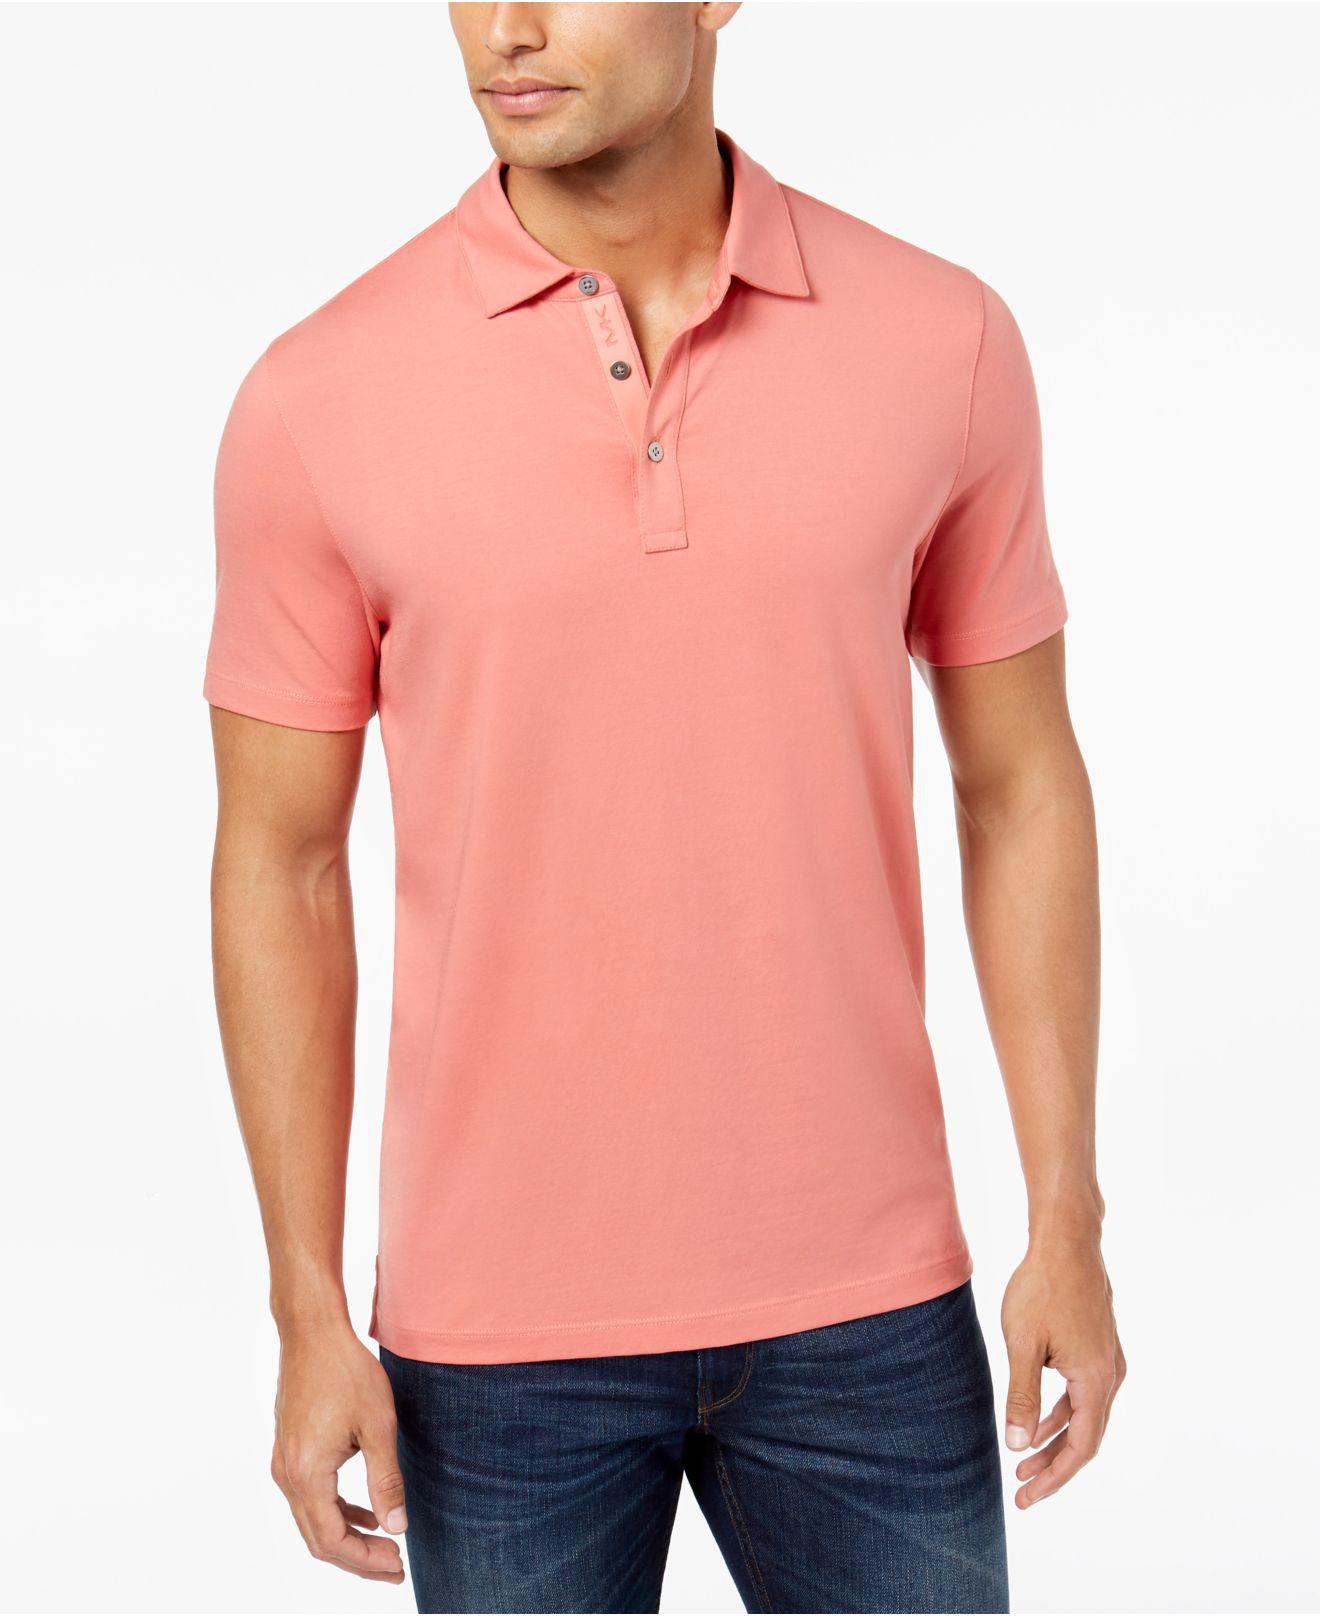 500094b4dfb28 Michael Kors Men s Bryant Stretch Polo in Pink for Men - Lyst